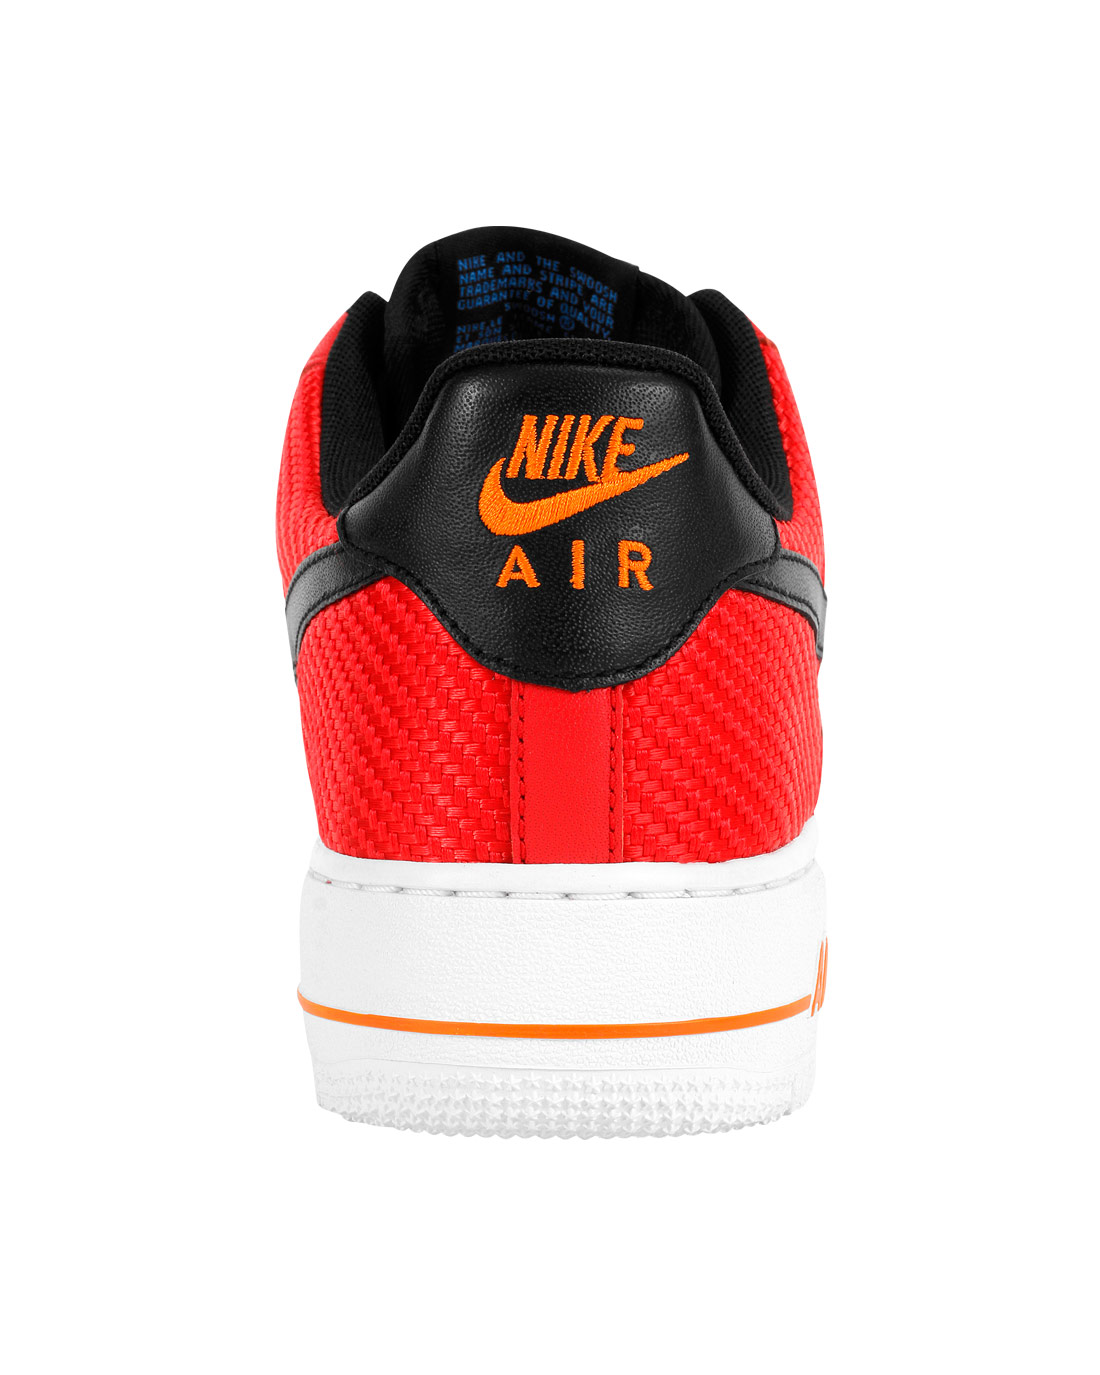 Nike Air Force 1 Low 'Barcelona' - New Images